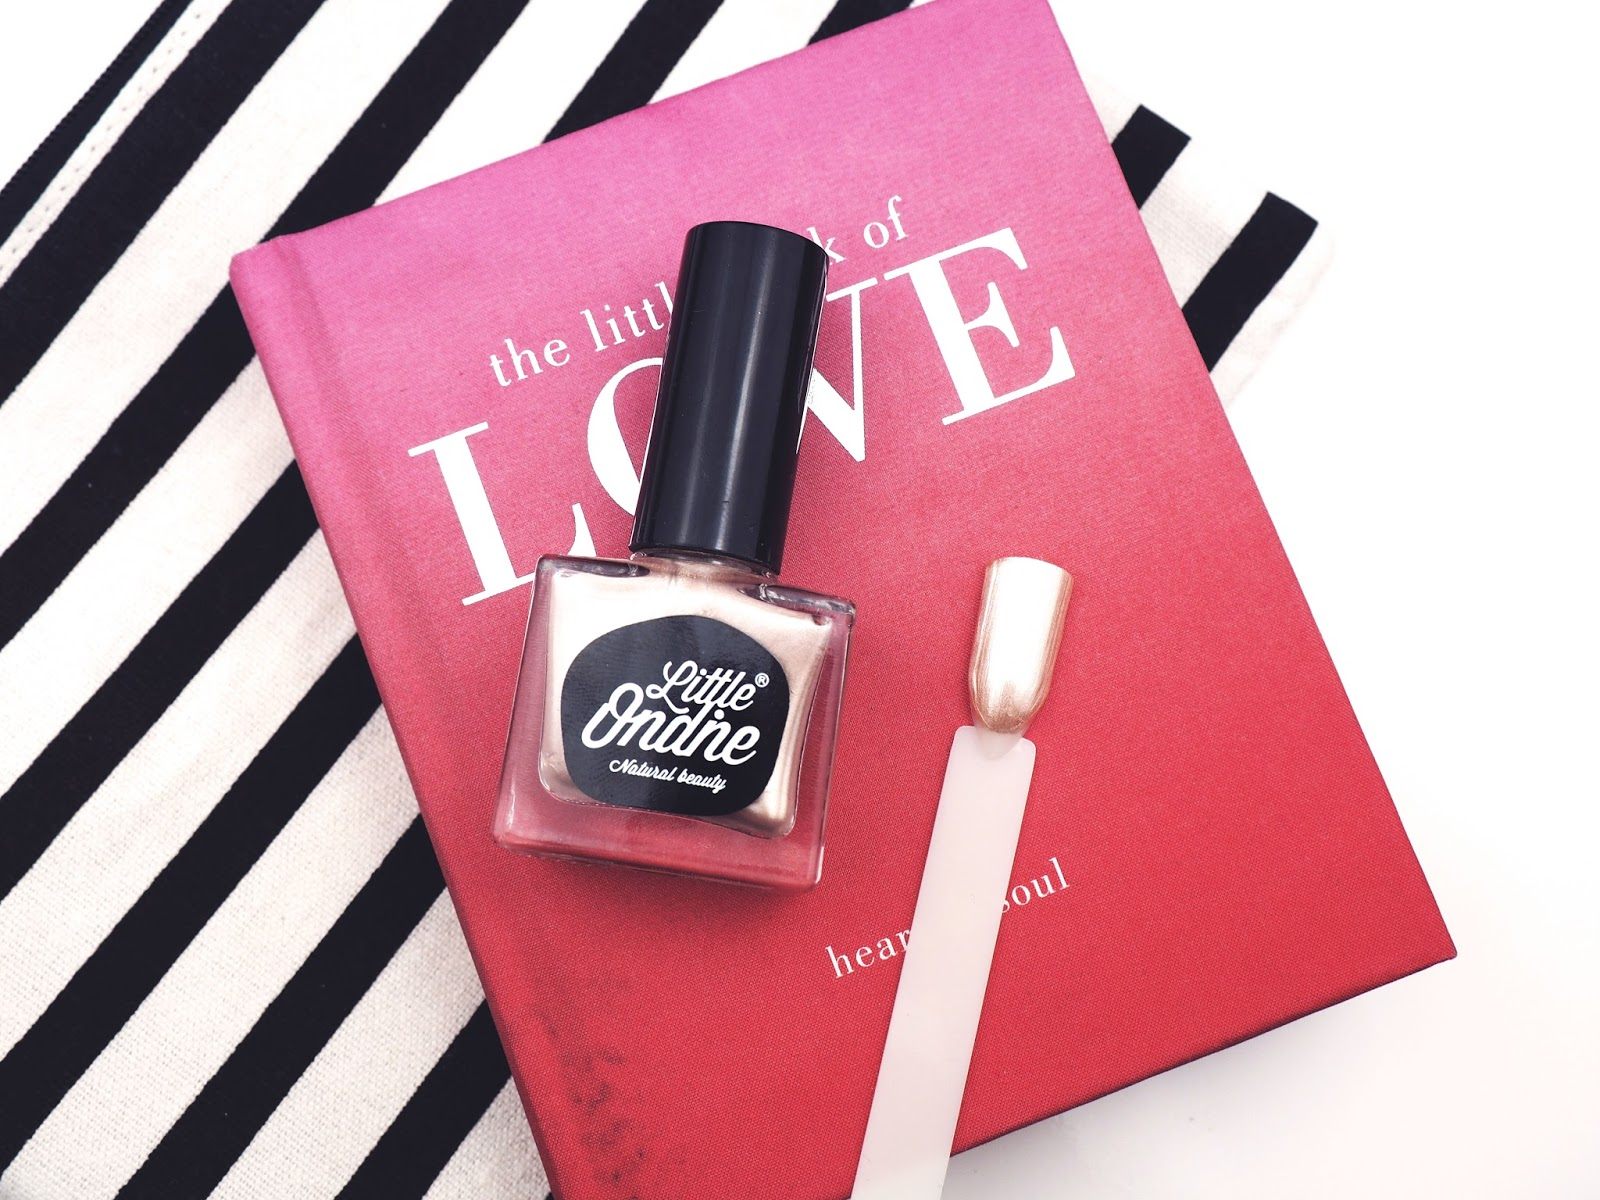 Little Ondine Nail Varnish in Obsession